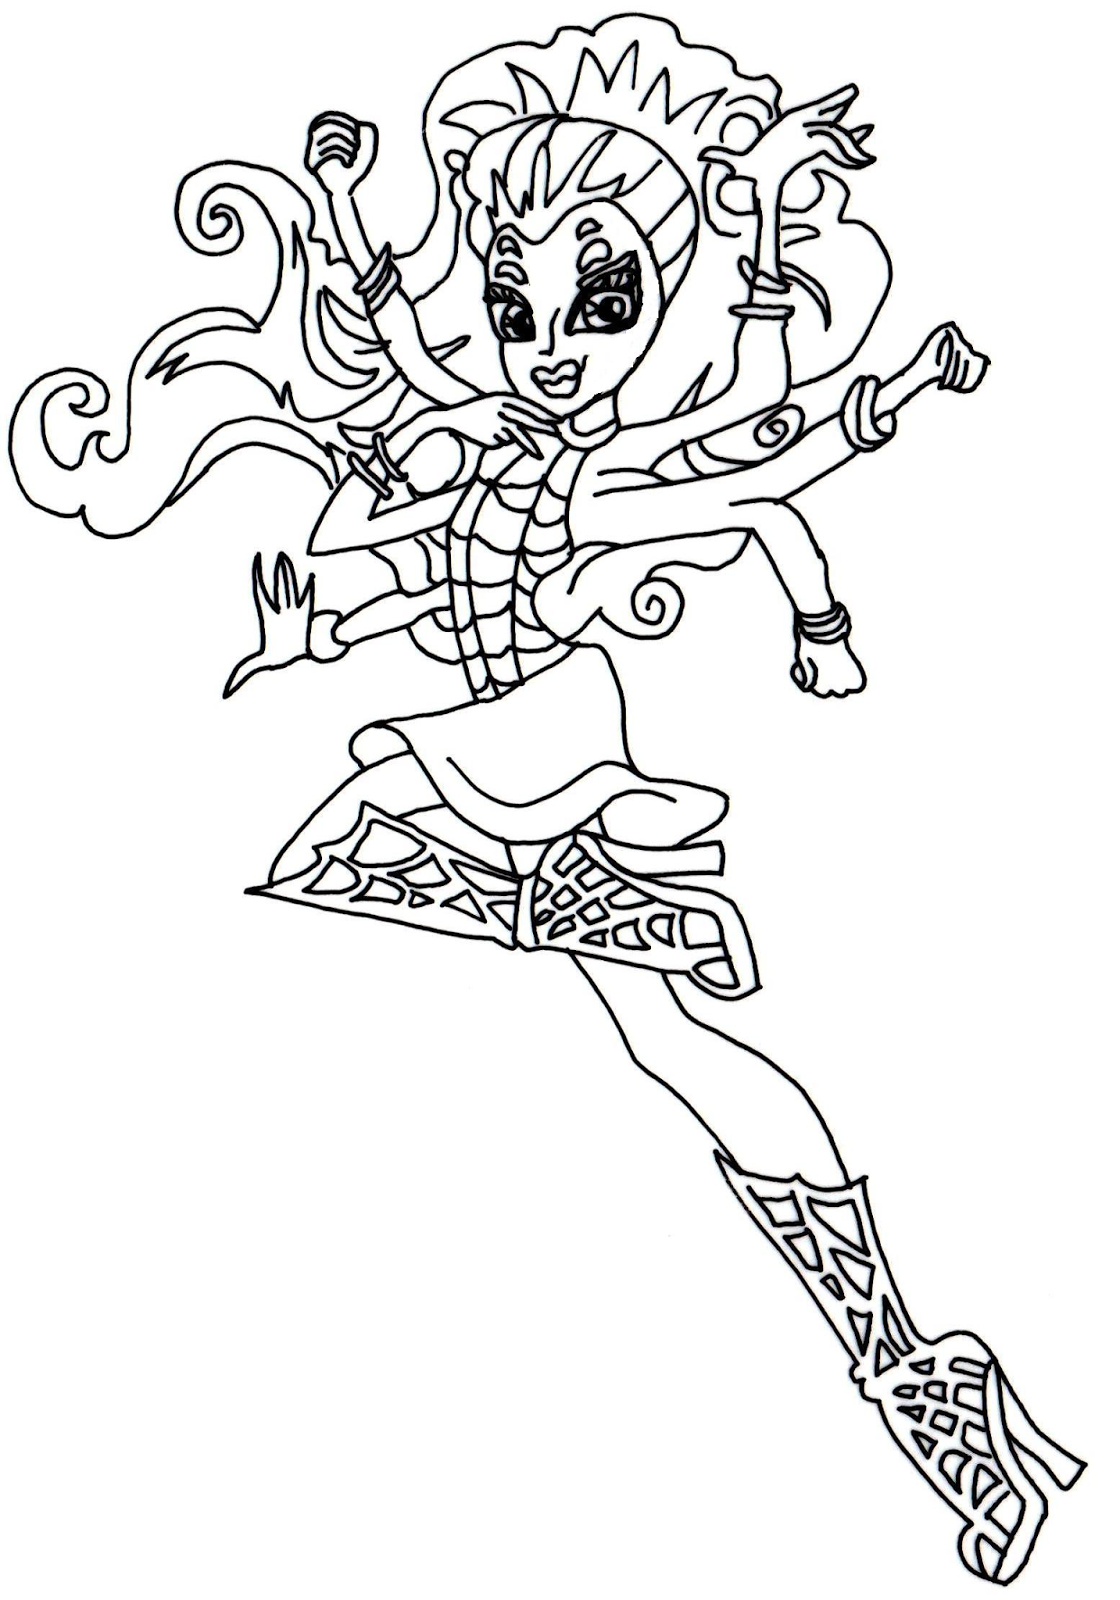 Free Printable Monster High Coloring Pages: December 2013